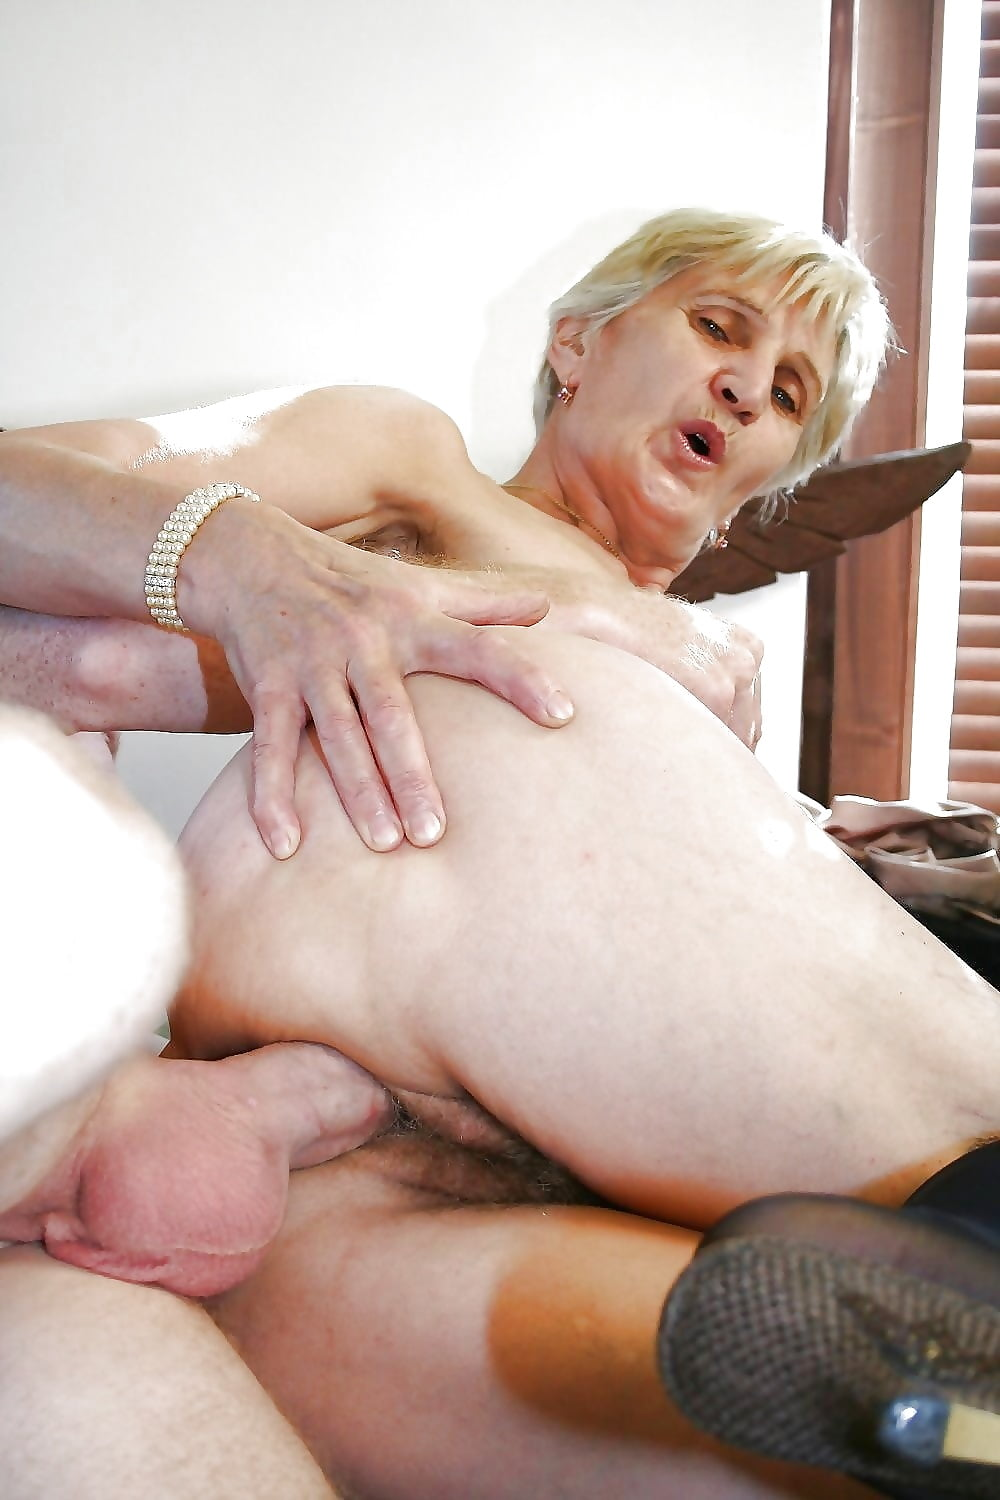 naked-grannies-getting-anal-sex-blonde-hairy-upskirt